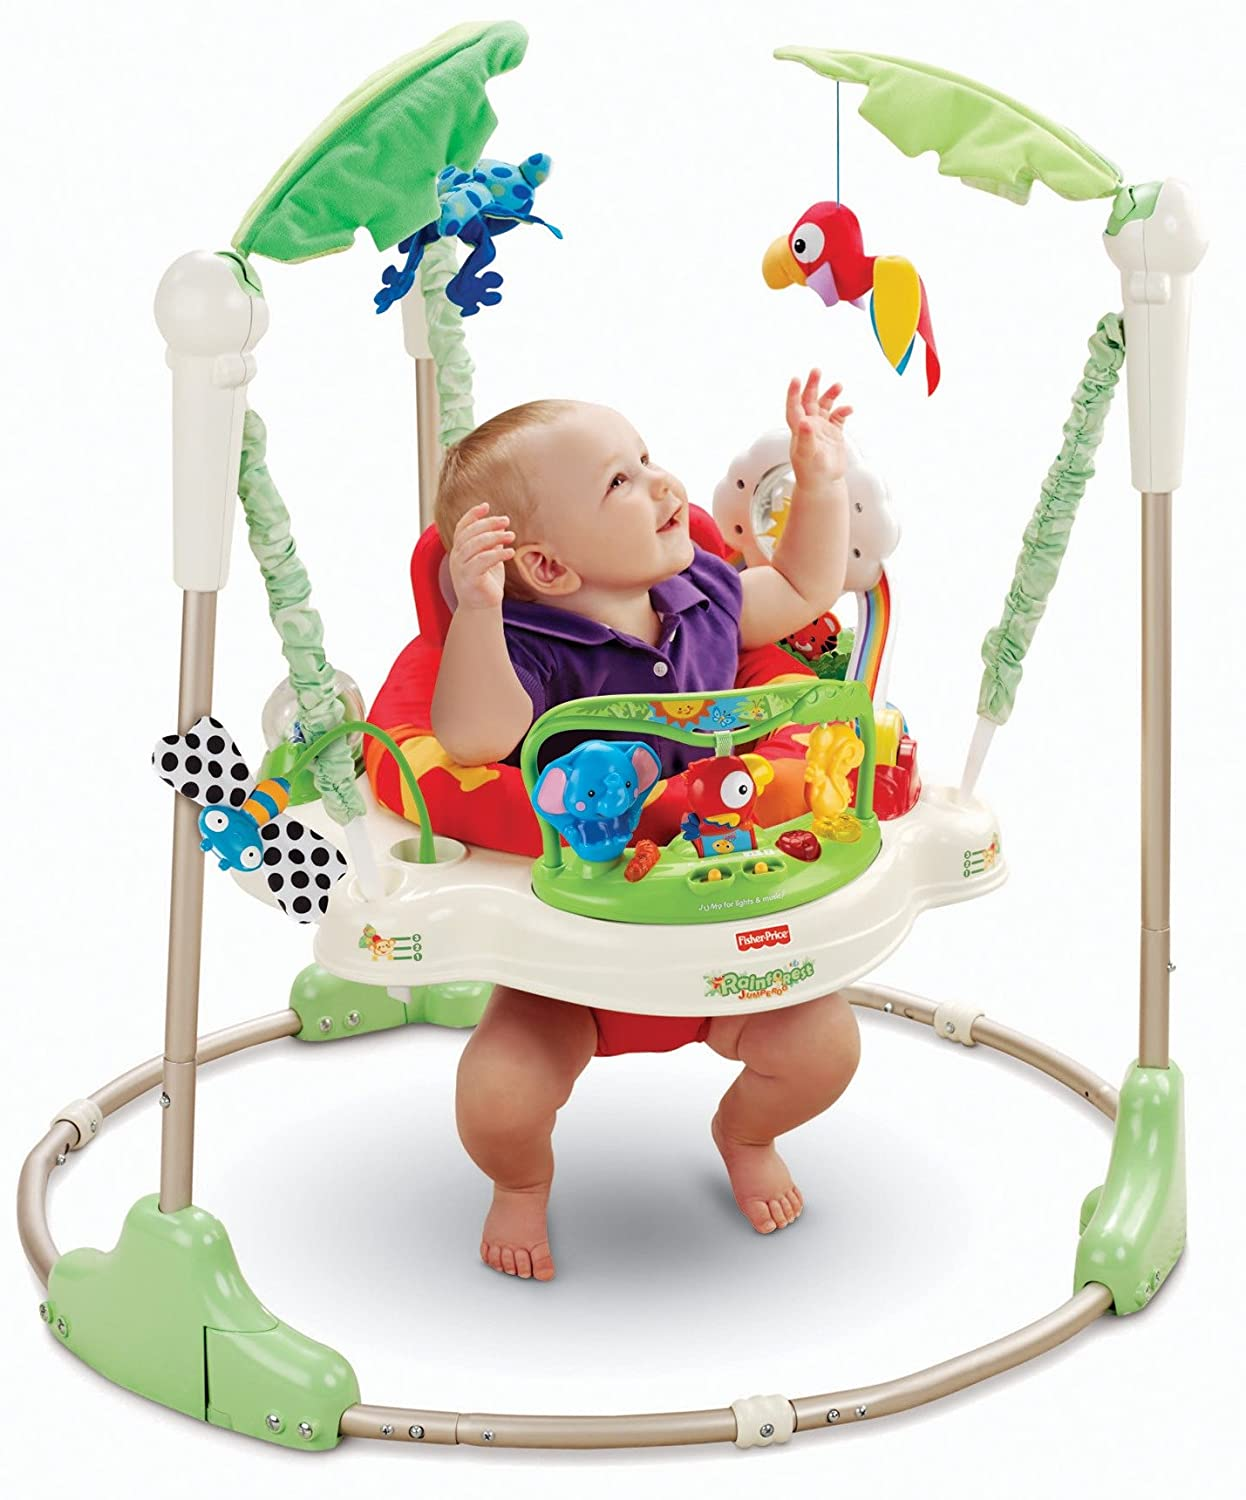 12 Months Baby Toys : Top rated baby toys to months in approved by mom